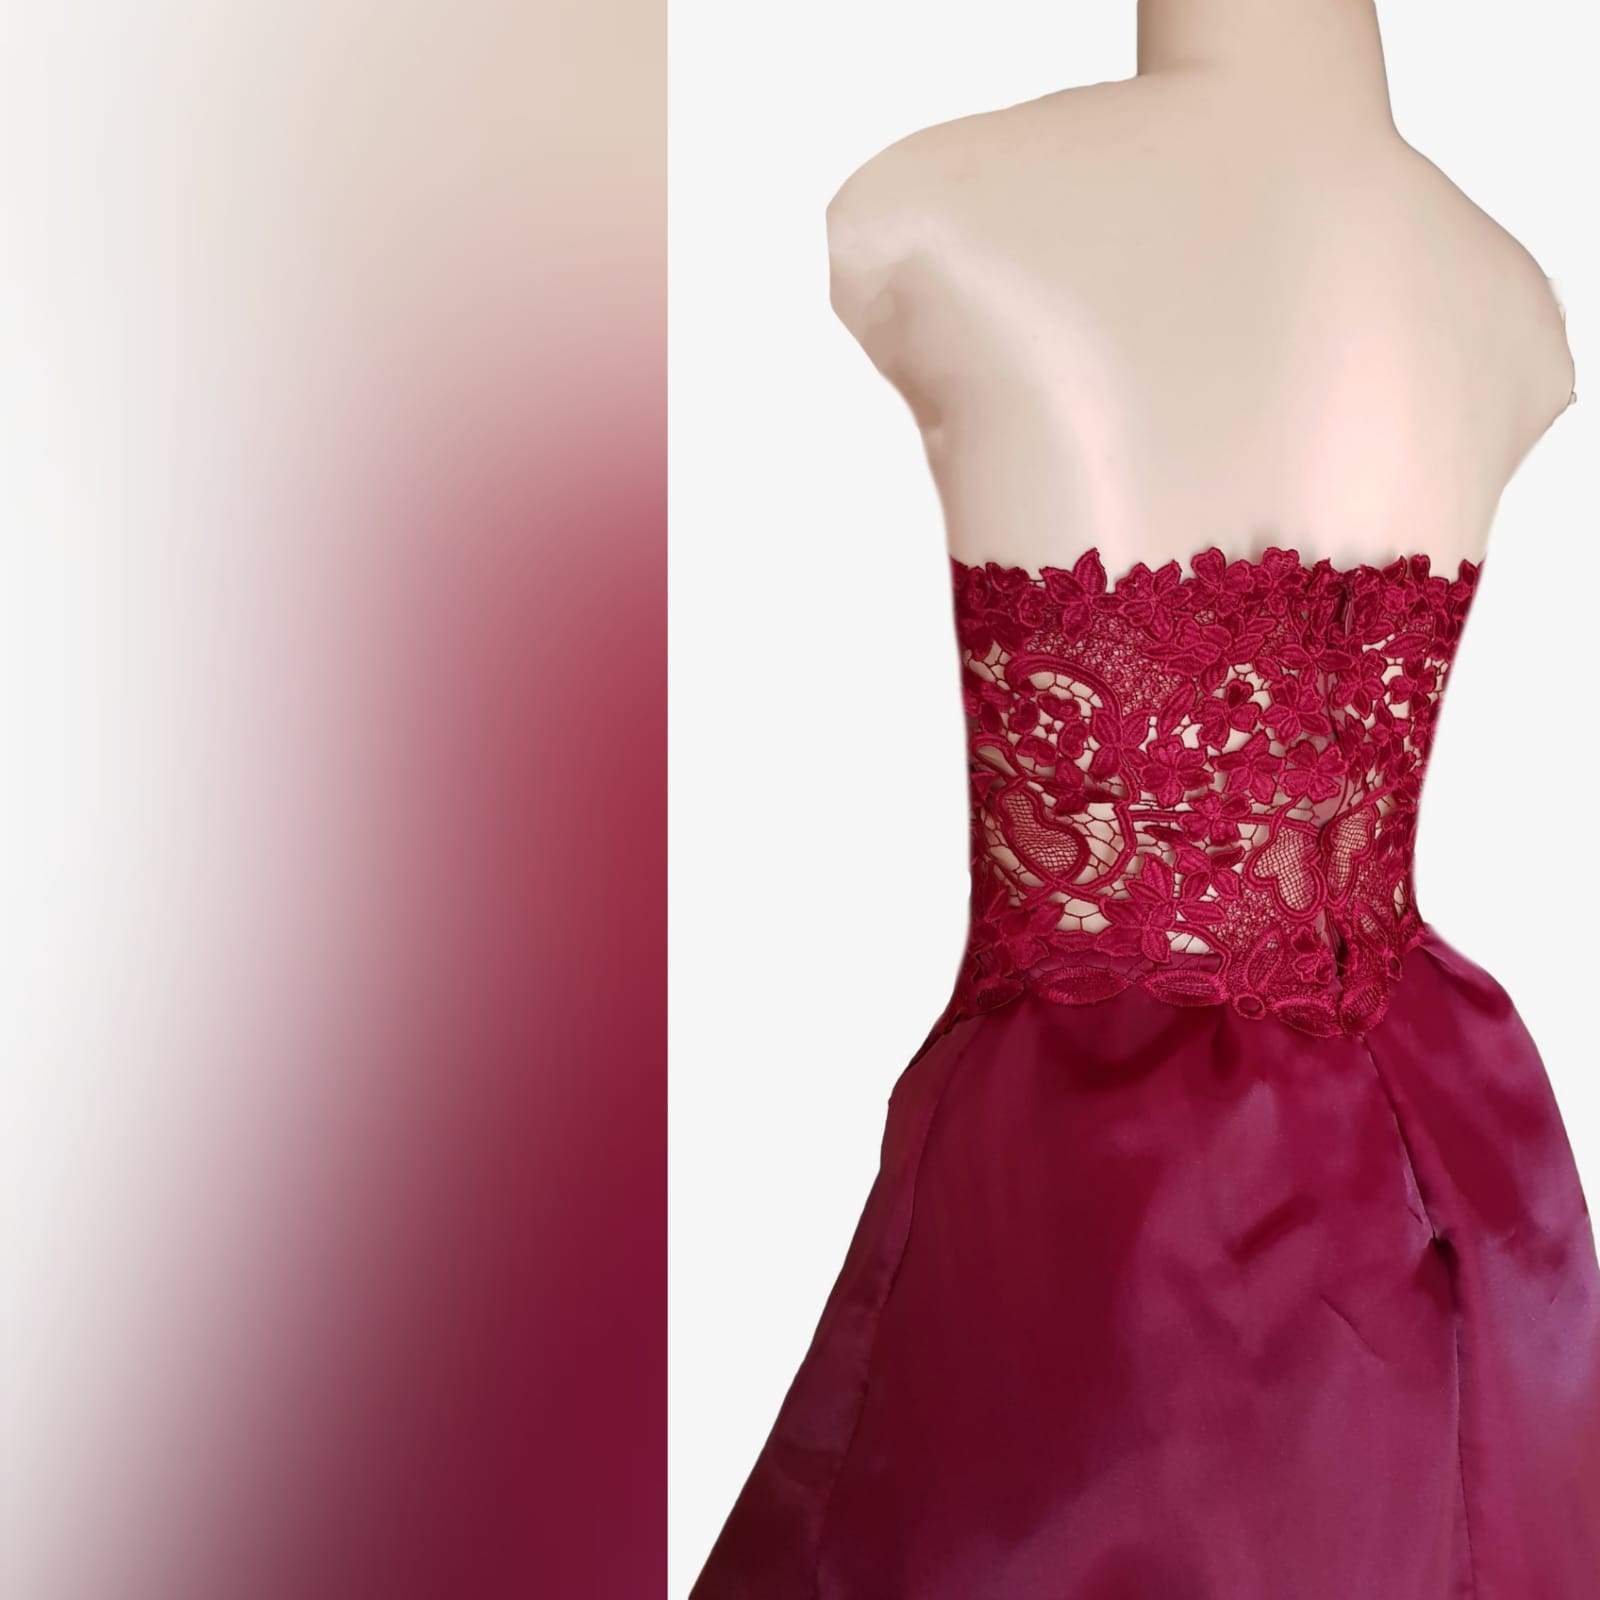 Dark red high low evening dress 5 the perfect dark red evening dress for your prom night if you want to look elegant yet adorable. With a lace bodice and a double layer hi - lo flowy bottom for a slight dramatic effect.